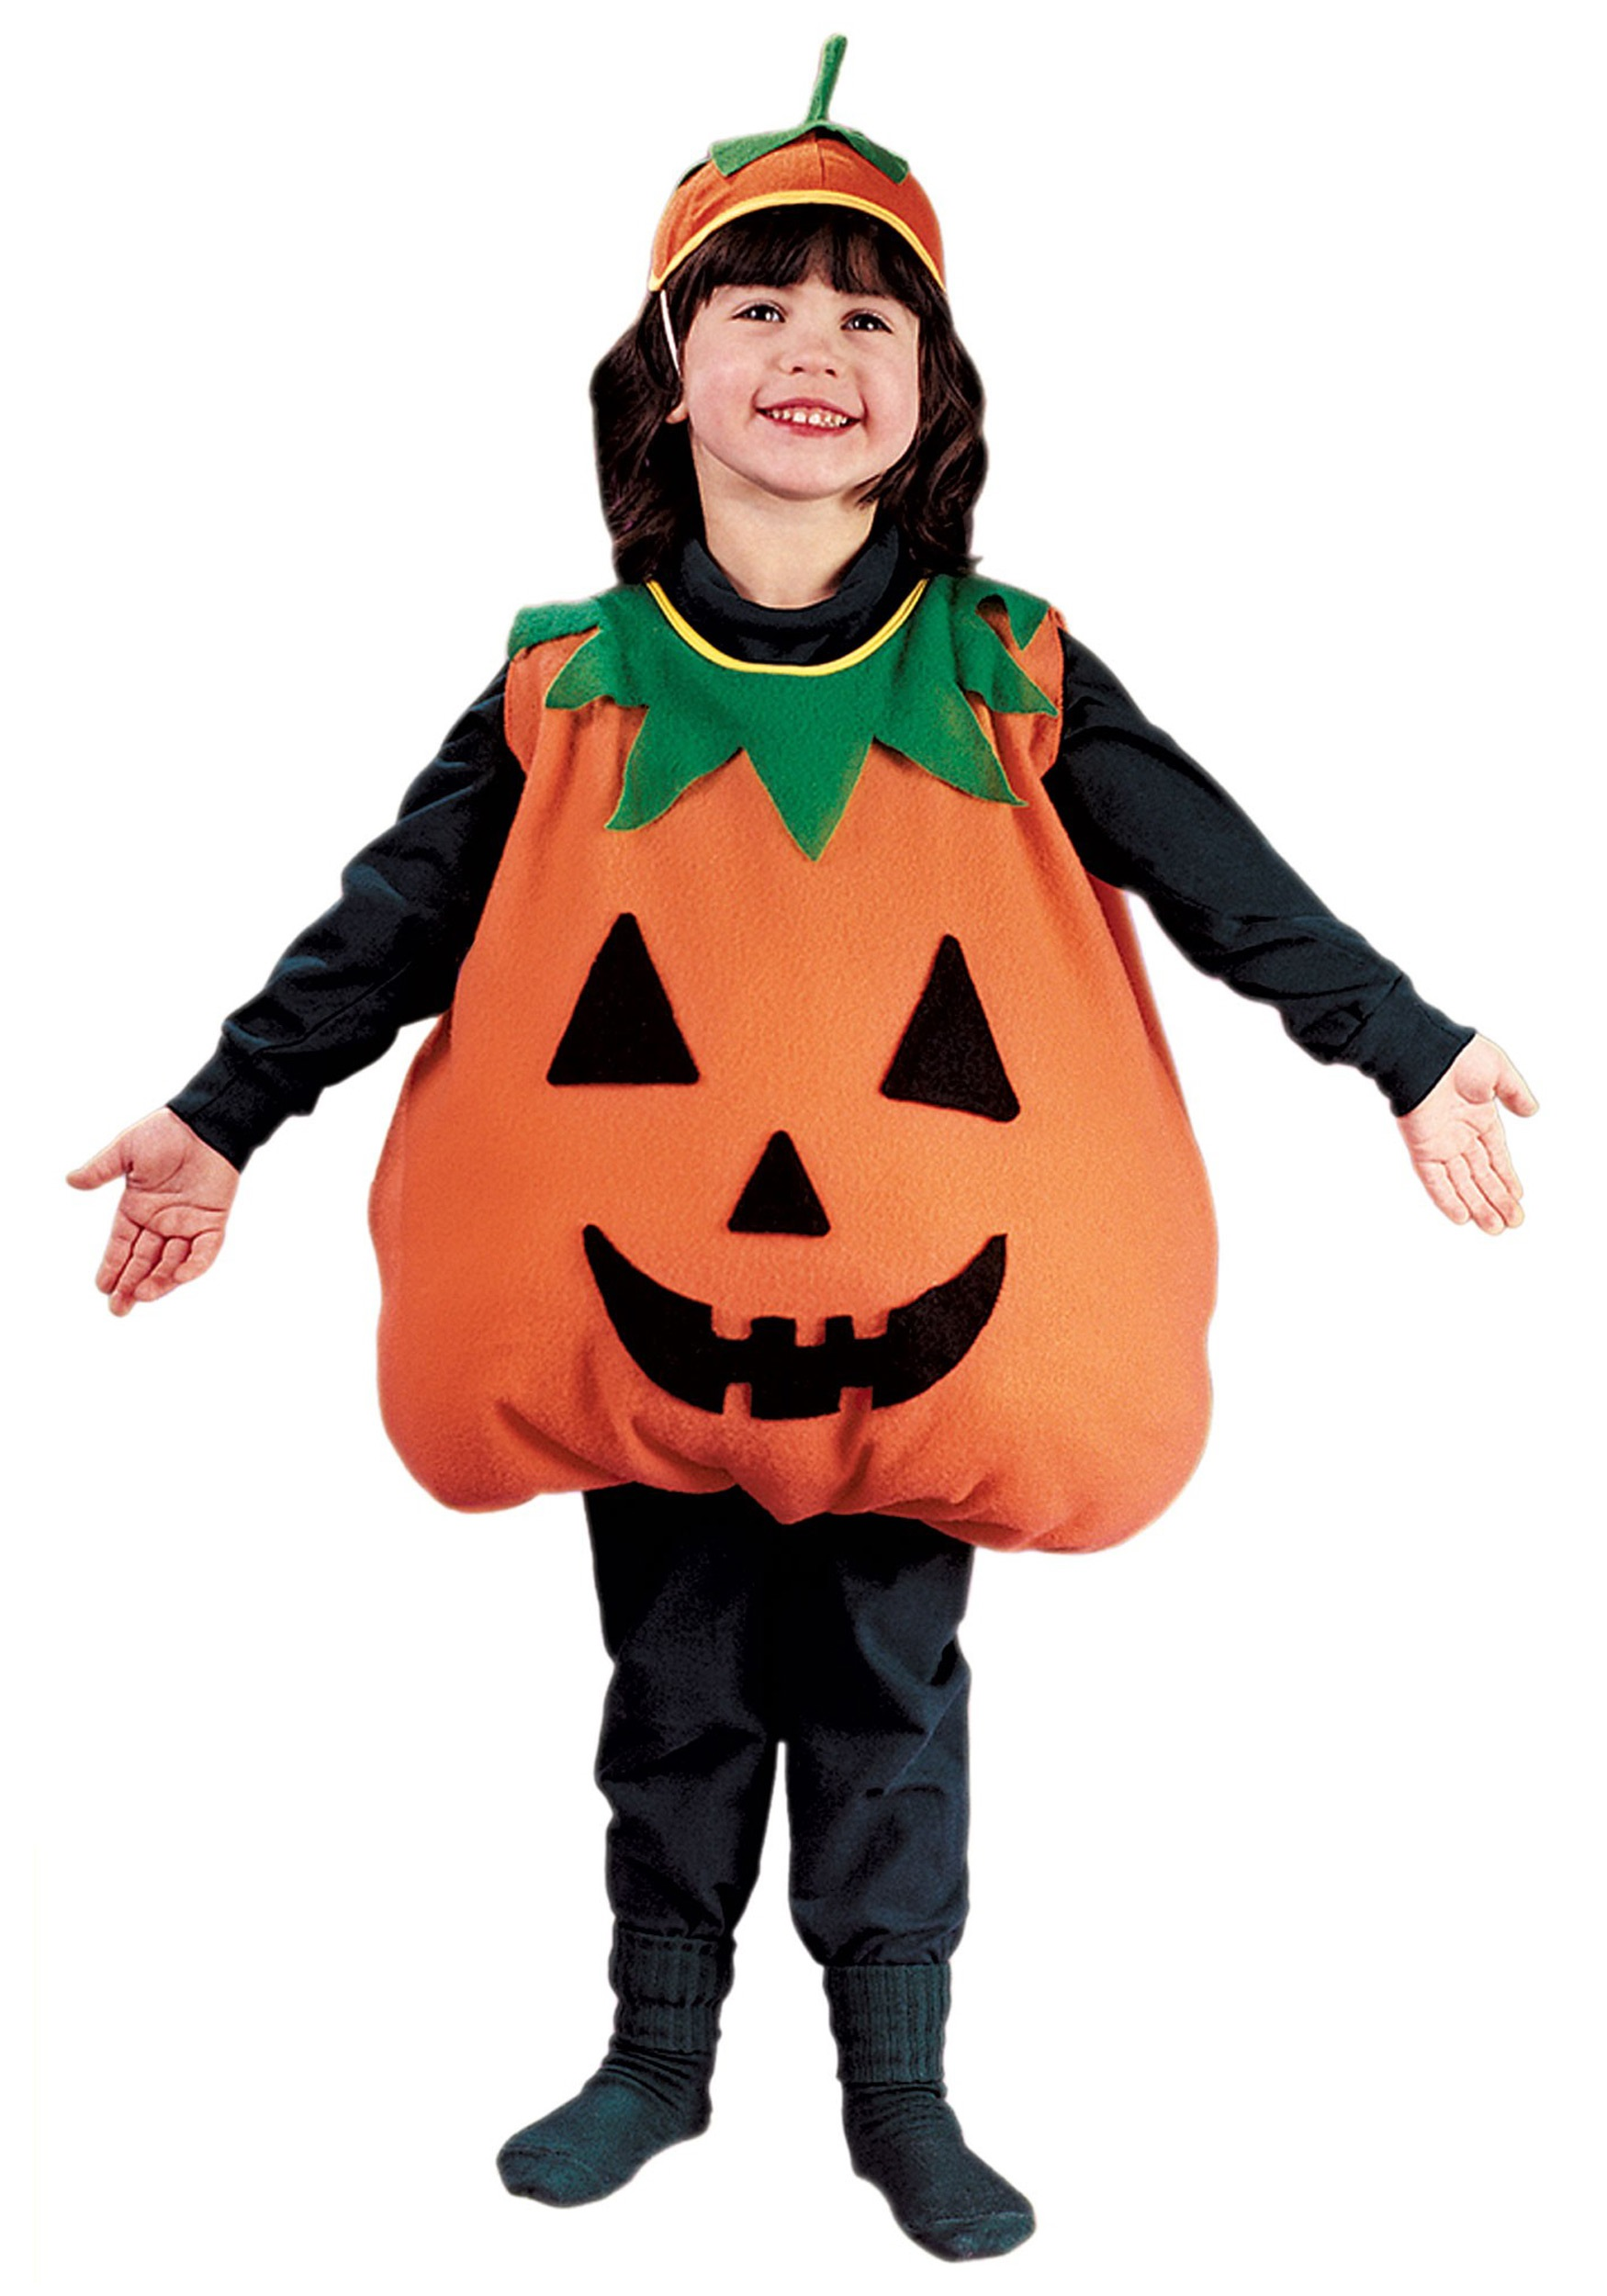 halloween costume ideas for 10 year old boy costumes